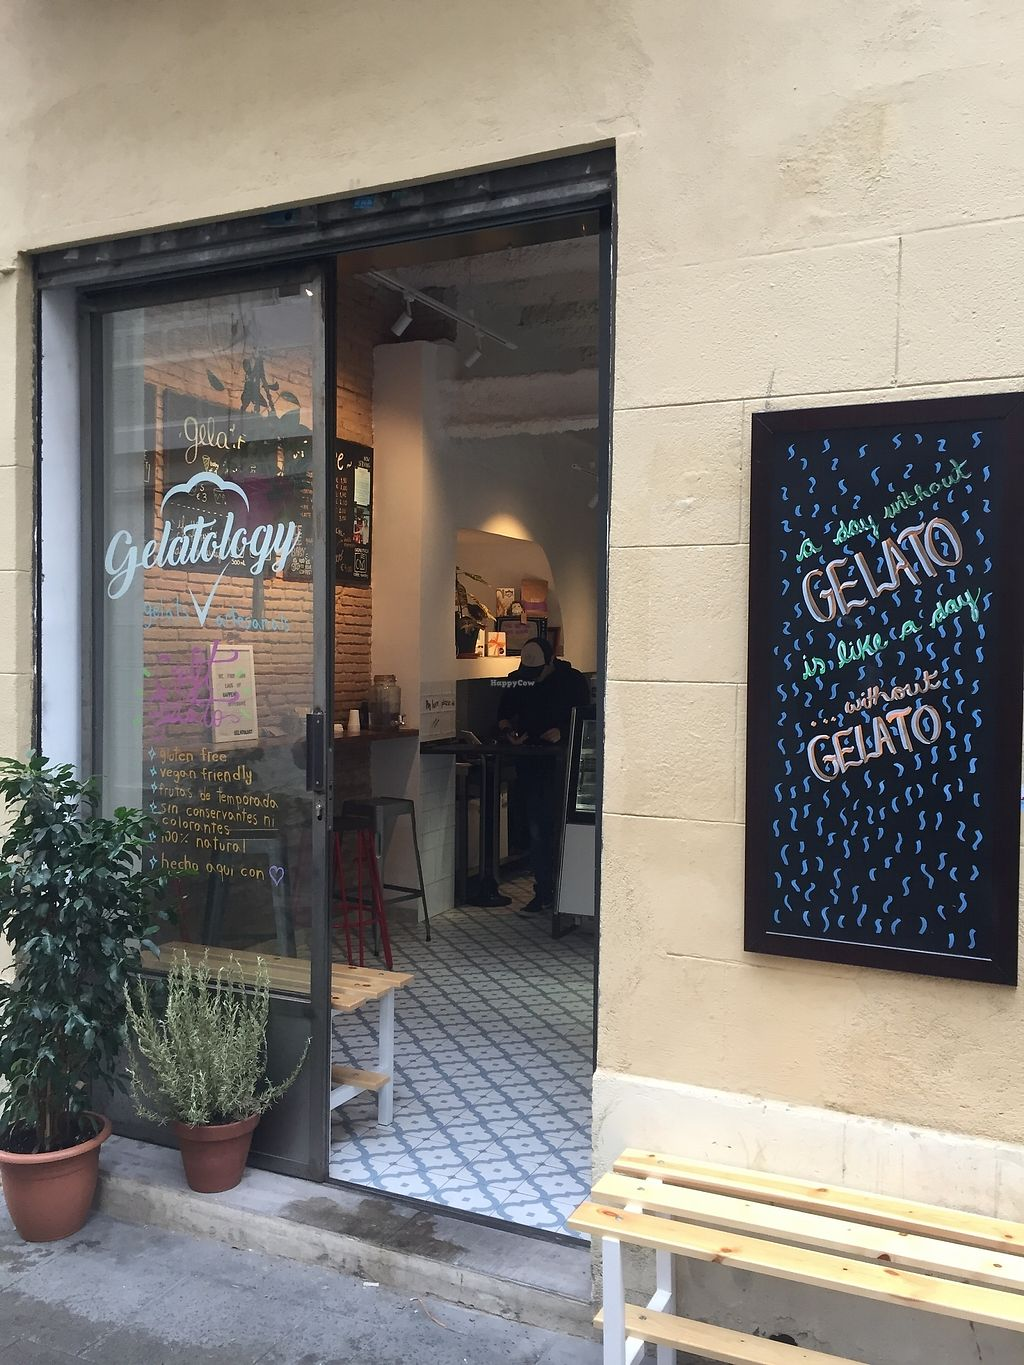 """Photo of Gelatology  by <a href=""""/members/profile/Jameskille"""">Jameskille</a> <br/>OUTSIDE  <br/> March 28, 2018  - <a href='/contact/abuse/image/115903/377196'>Report</a>"""